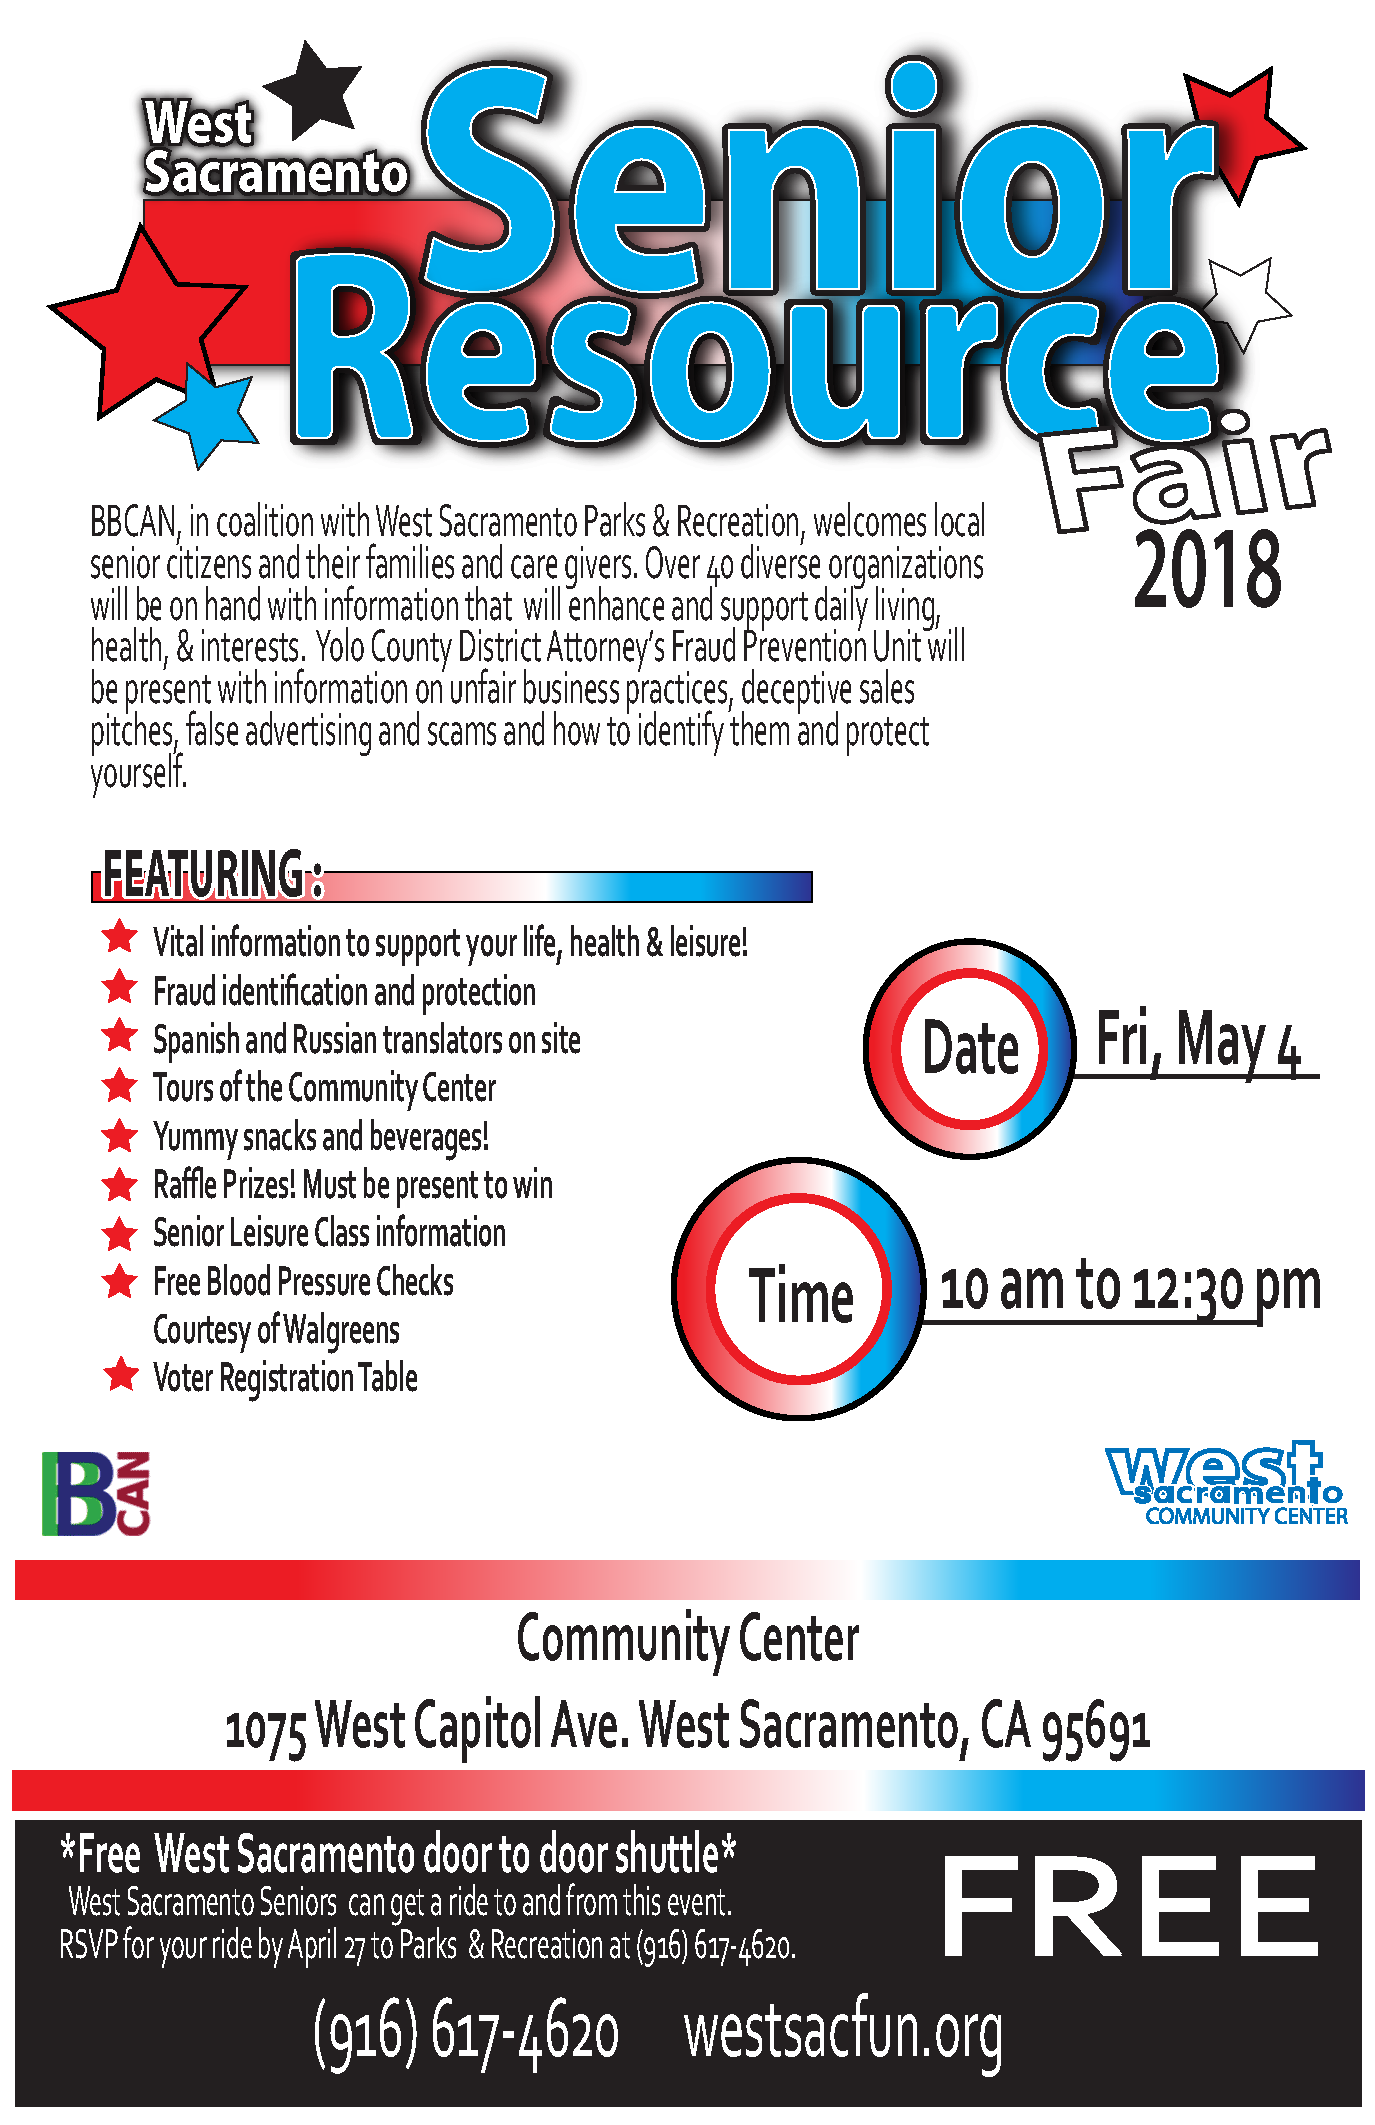 Senior Resource Fair in west sacramento on may 4th 2018